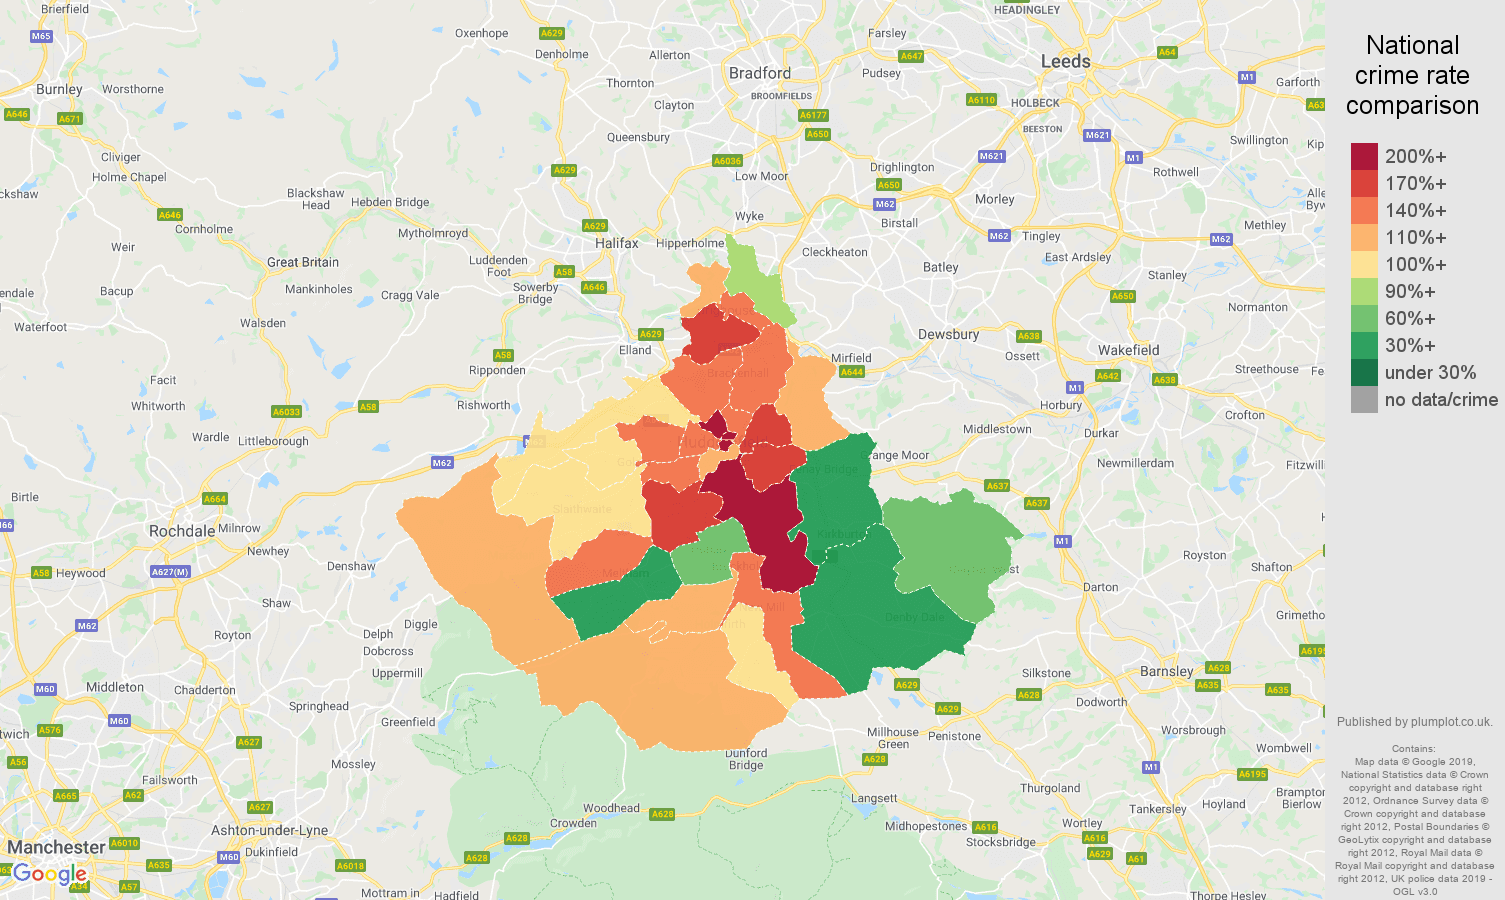 Huddersfield public order crime rate comparison map